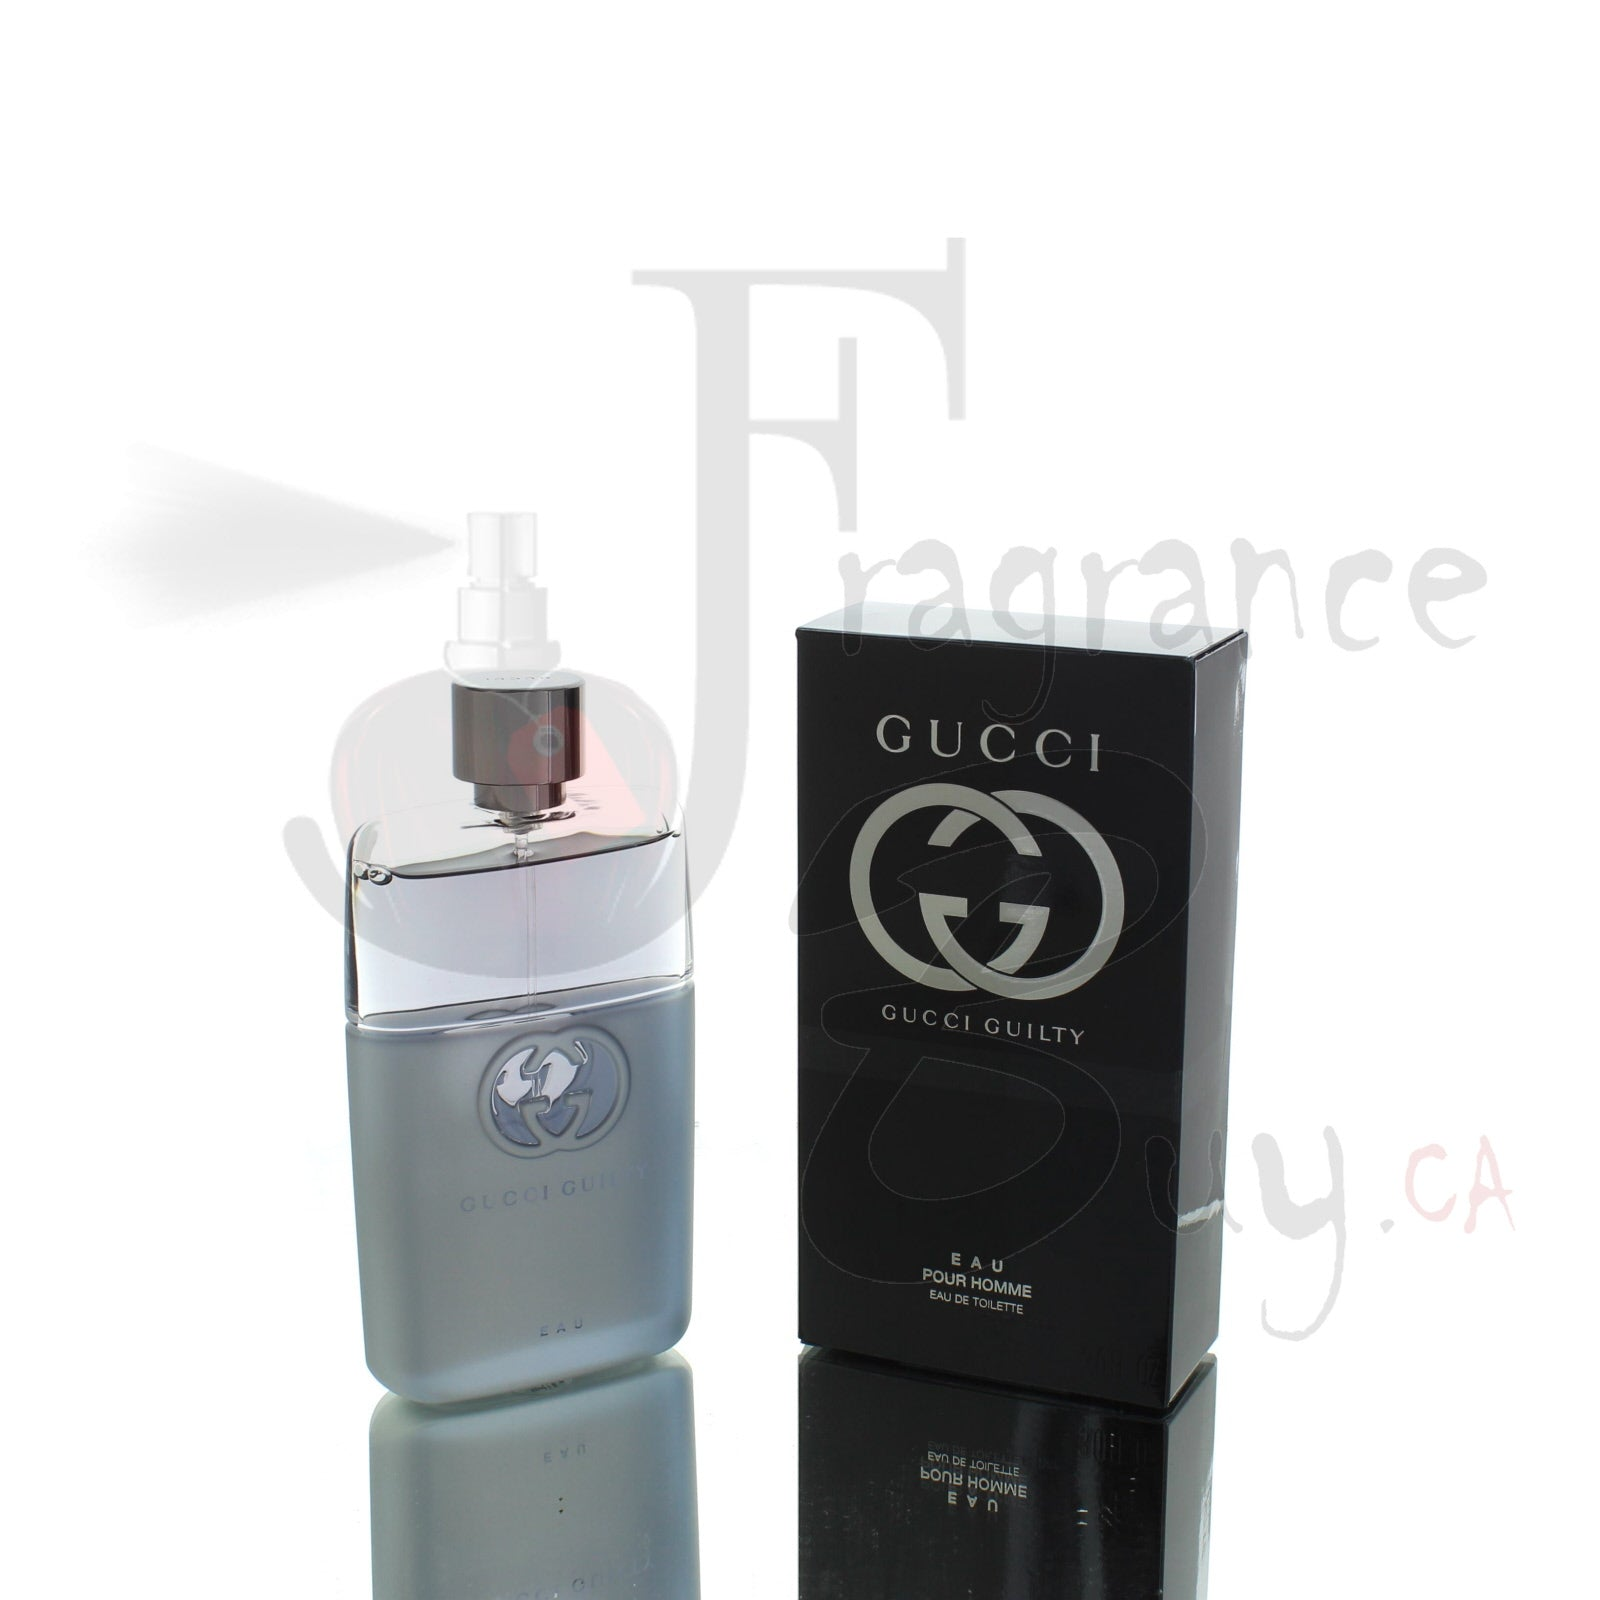 Gucci Guilty EAU For Man